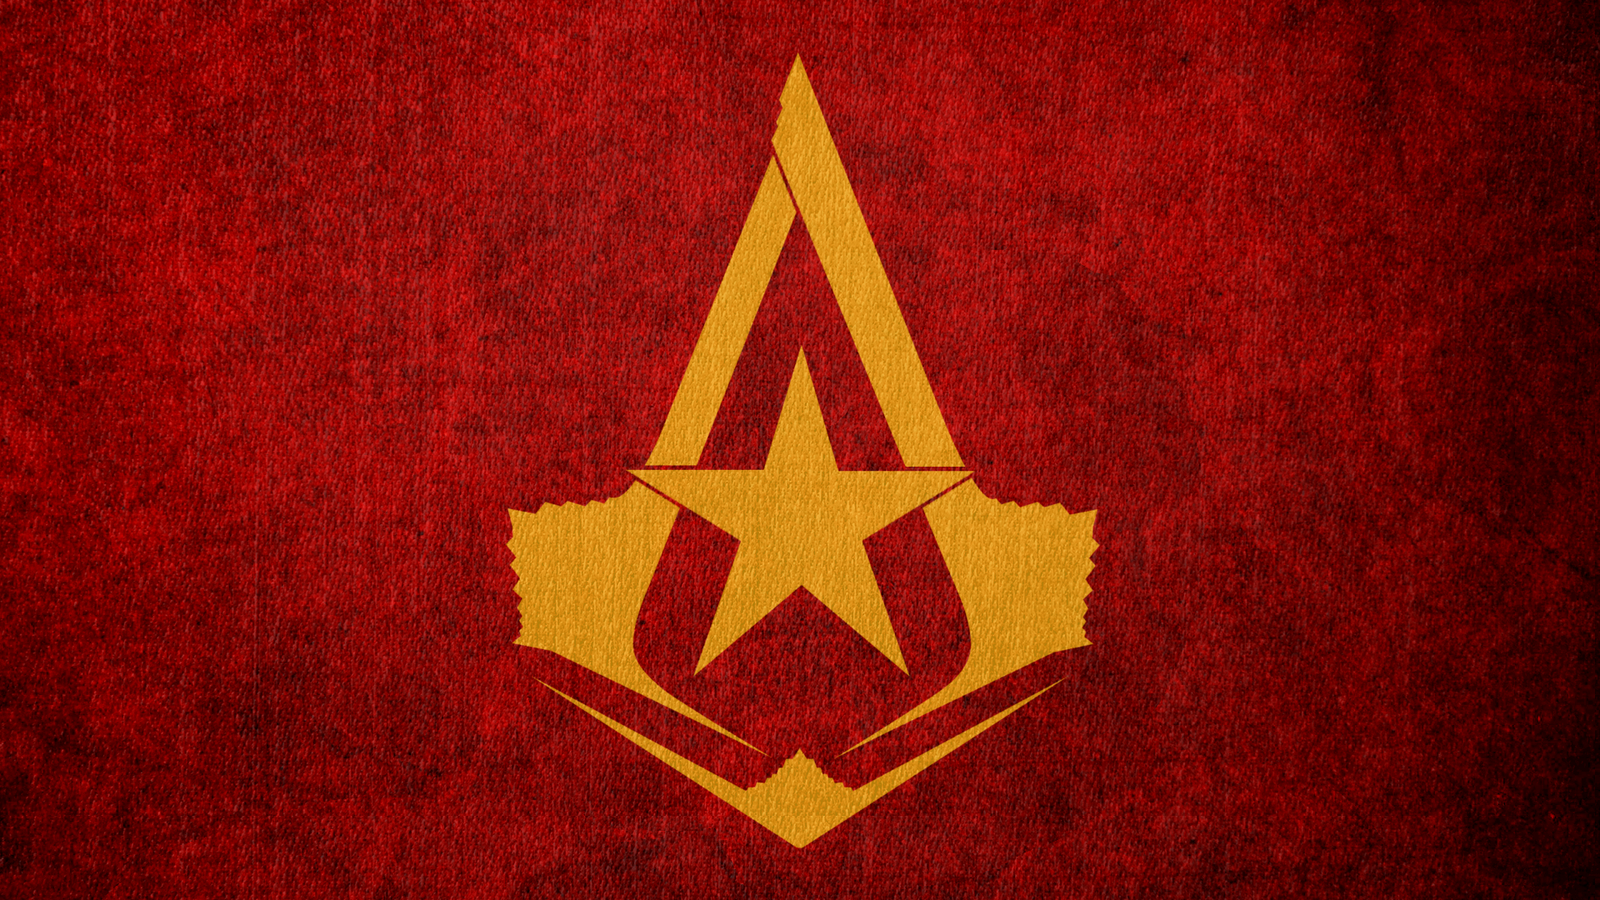 Assassin S Creed Russian Revolutionary Flag By Okiir On